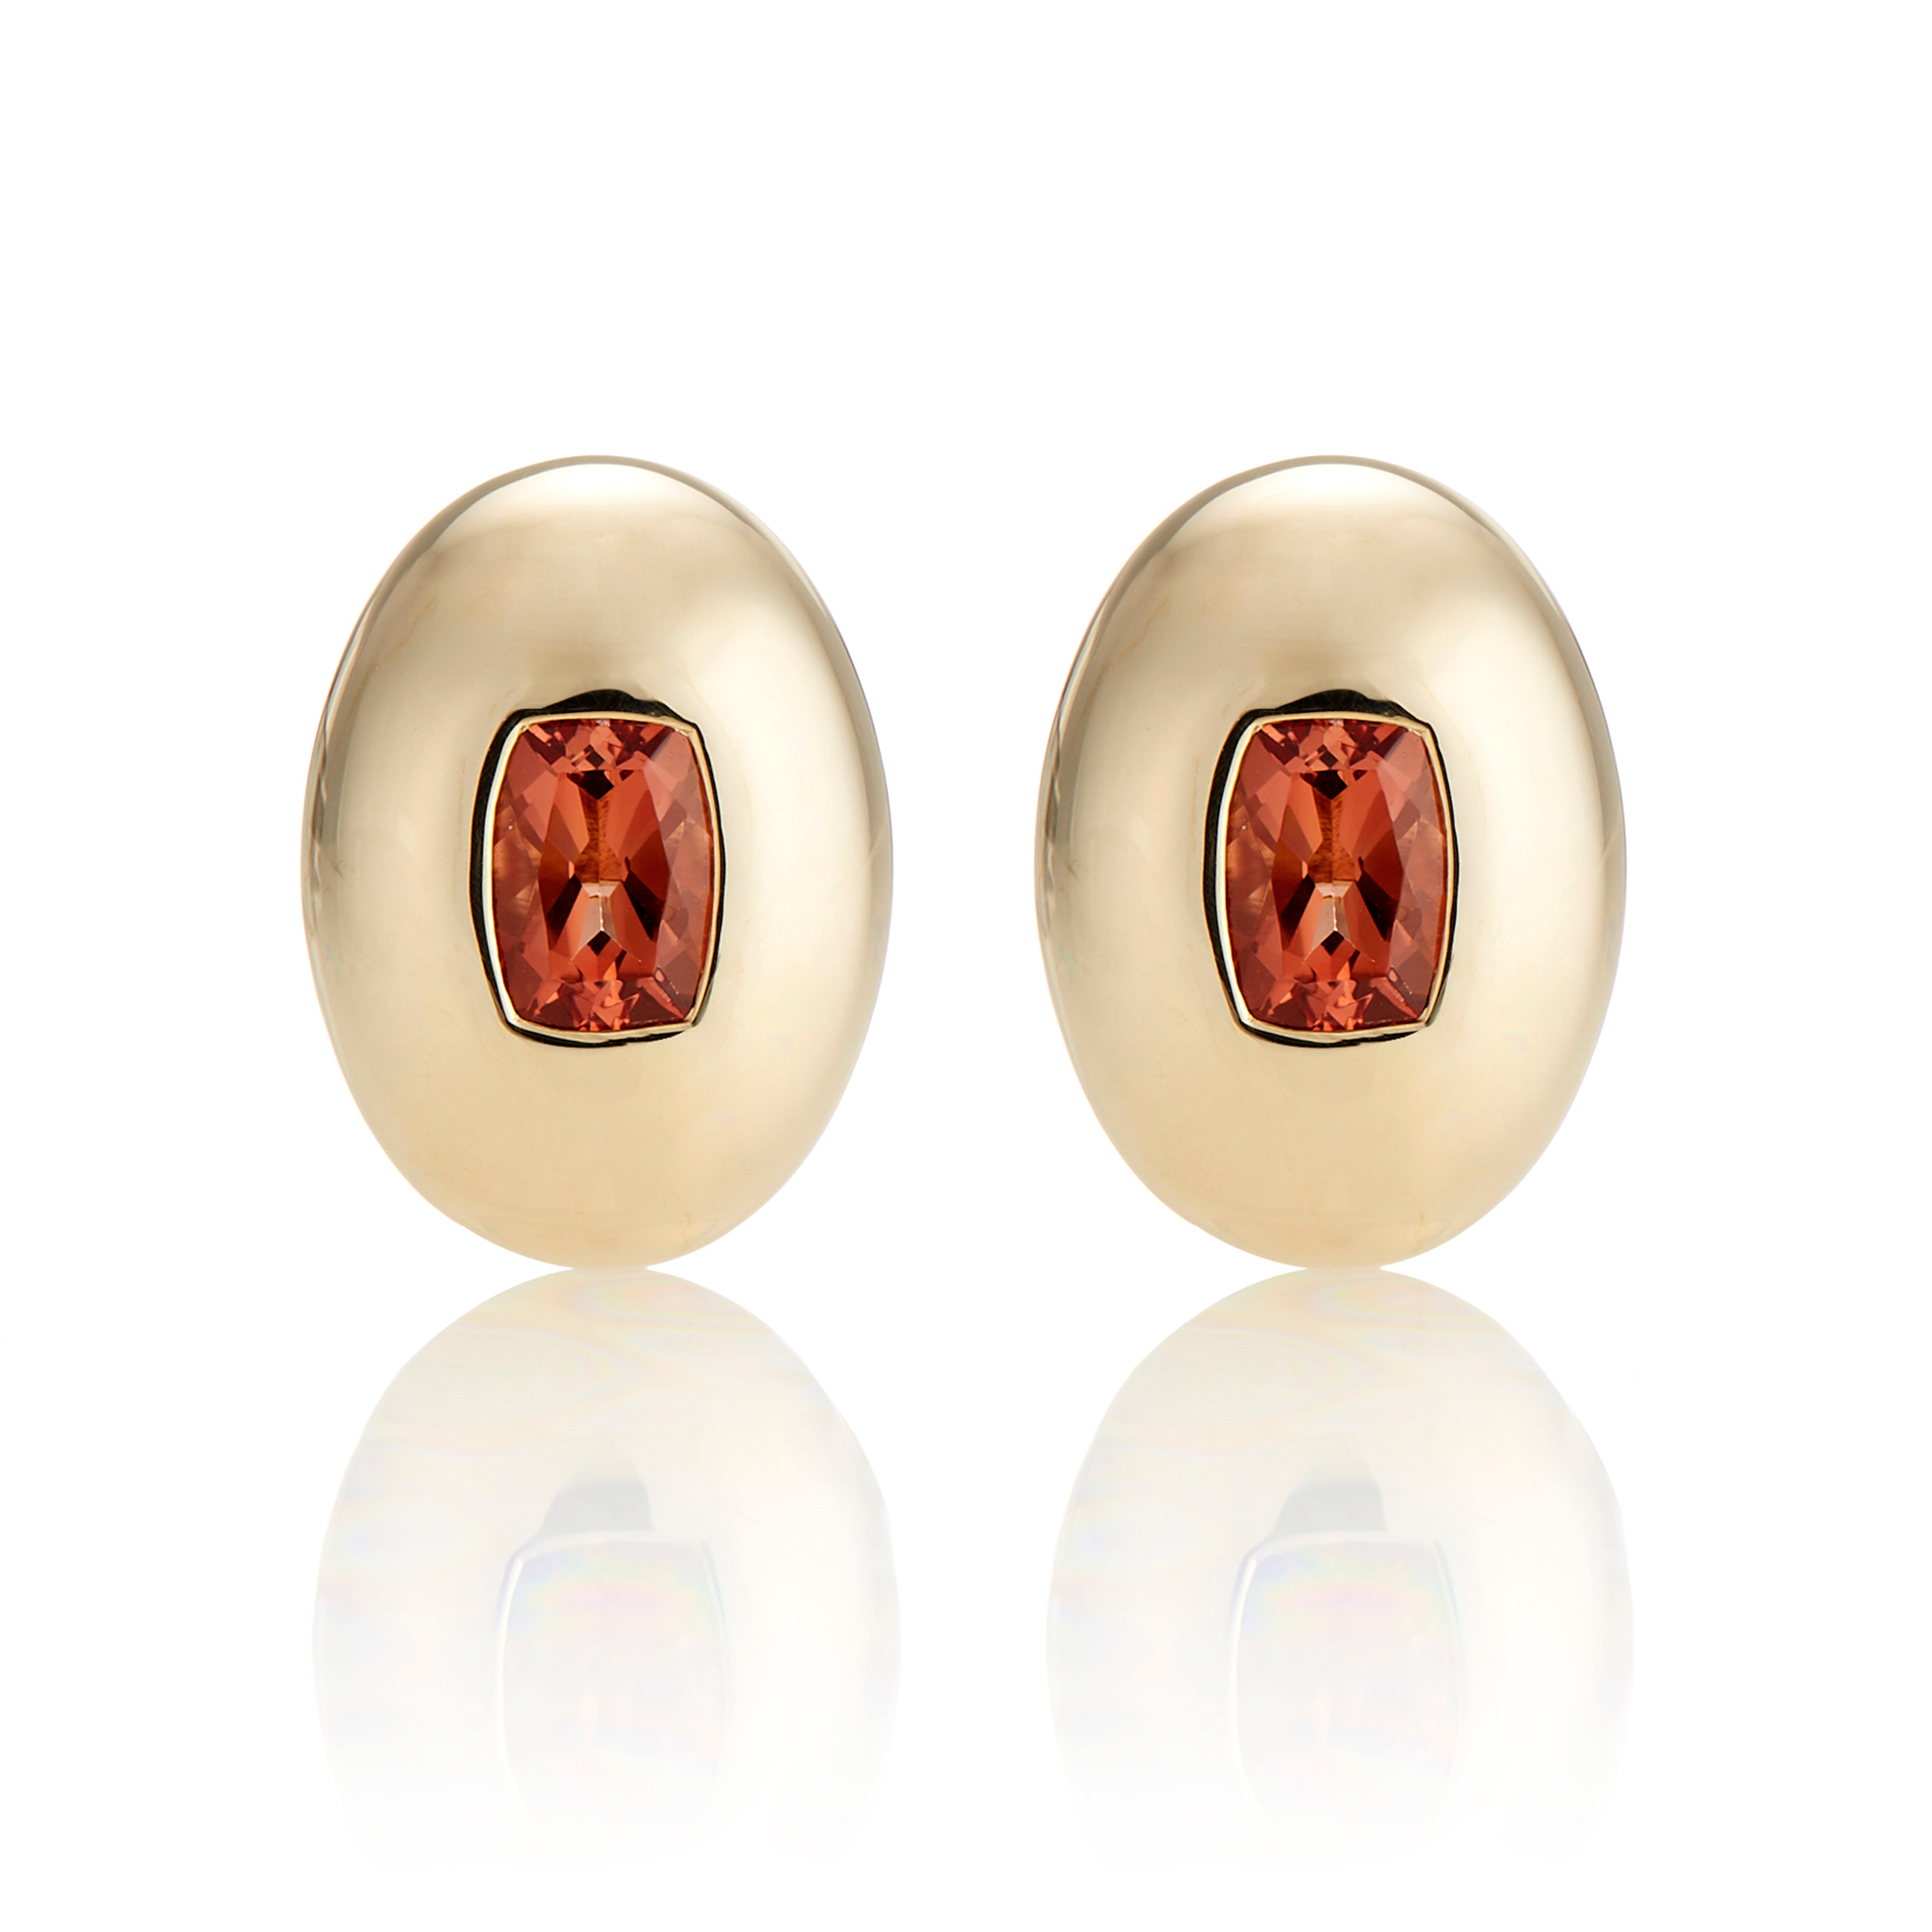 Gump's Oval Orange Andesine Earrings